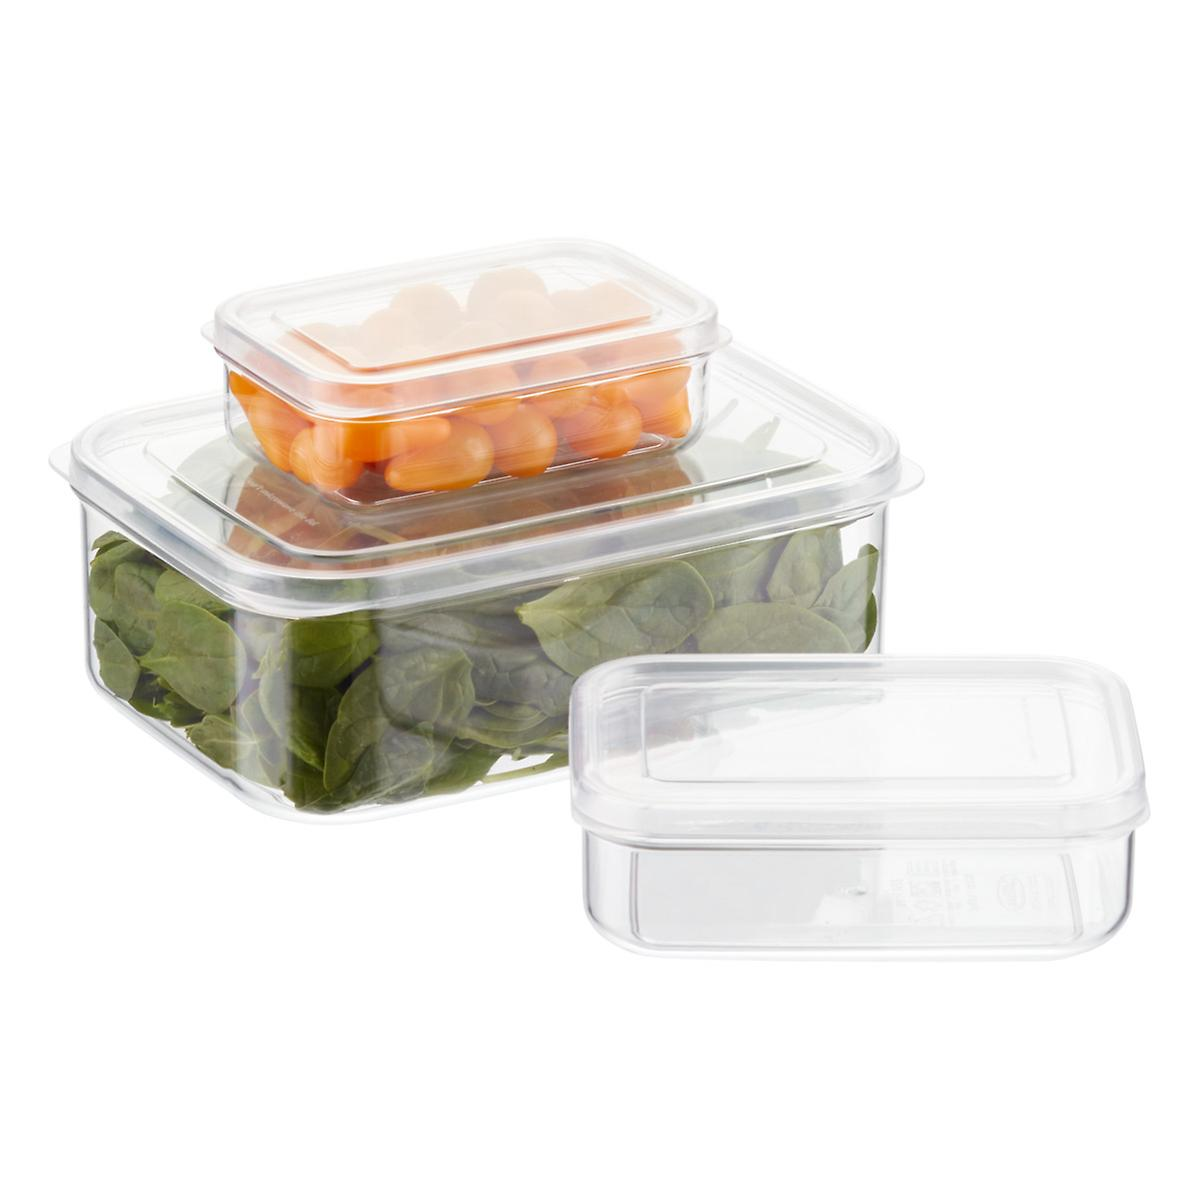 Crystal Clear Rectangular Food Storage